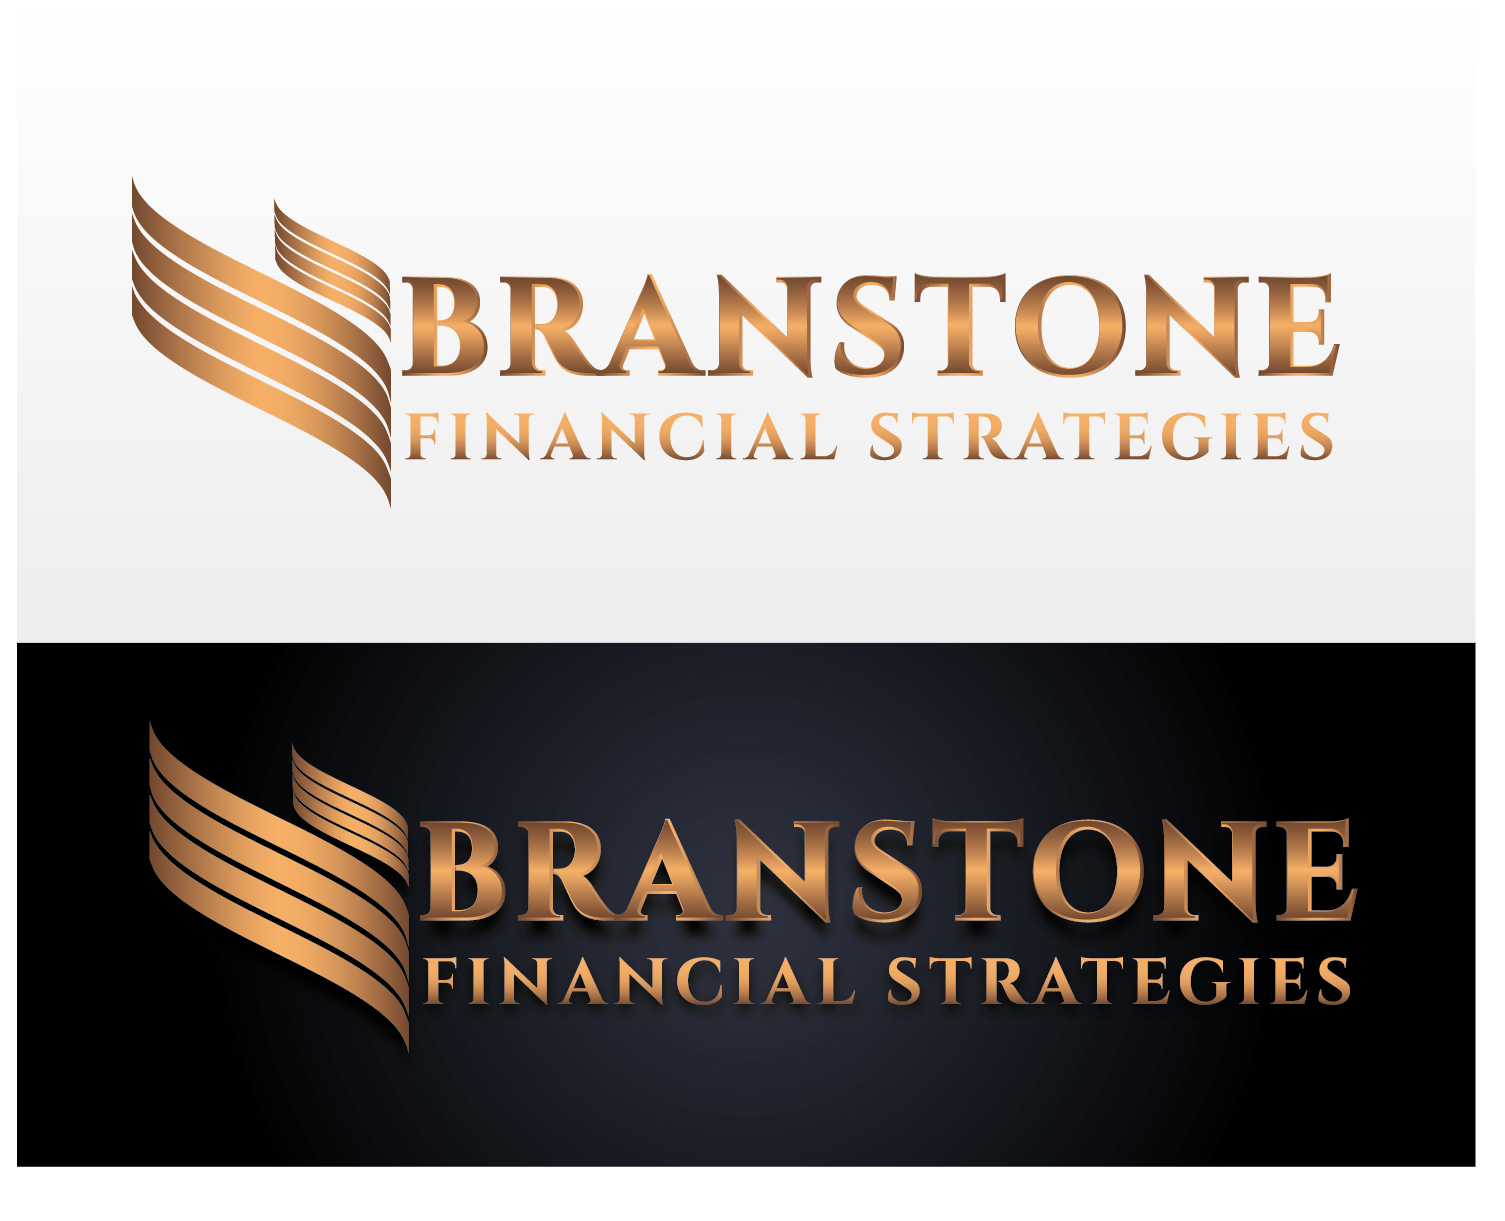 Logo Design by VENTSISLAV KOVACHEV - Entry No. 79 in the Logo Design Contest Inspiring Logo Design for Branstone Financial Strategies.